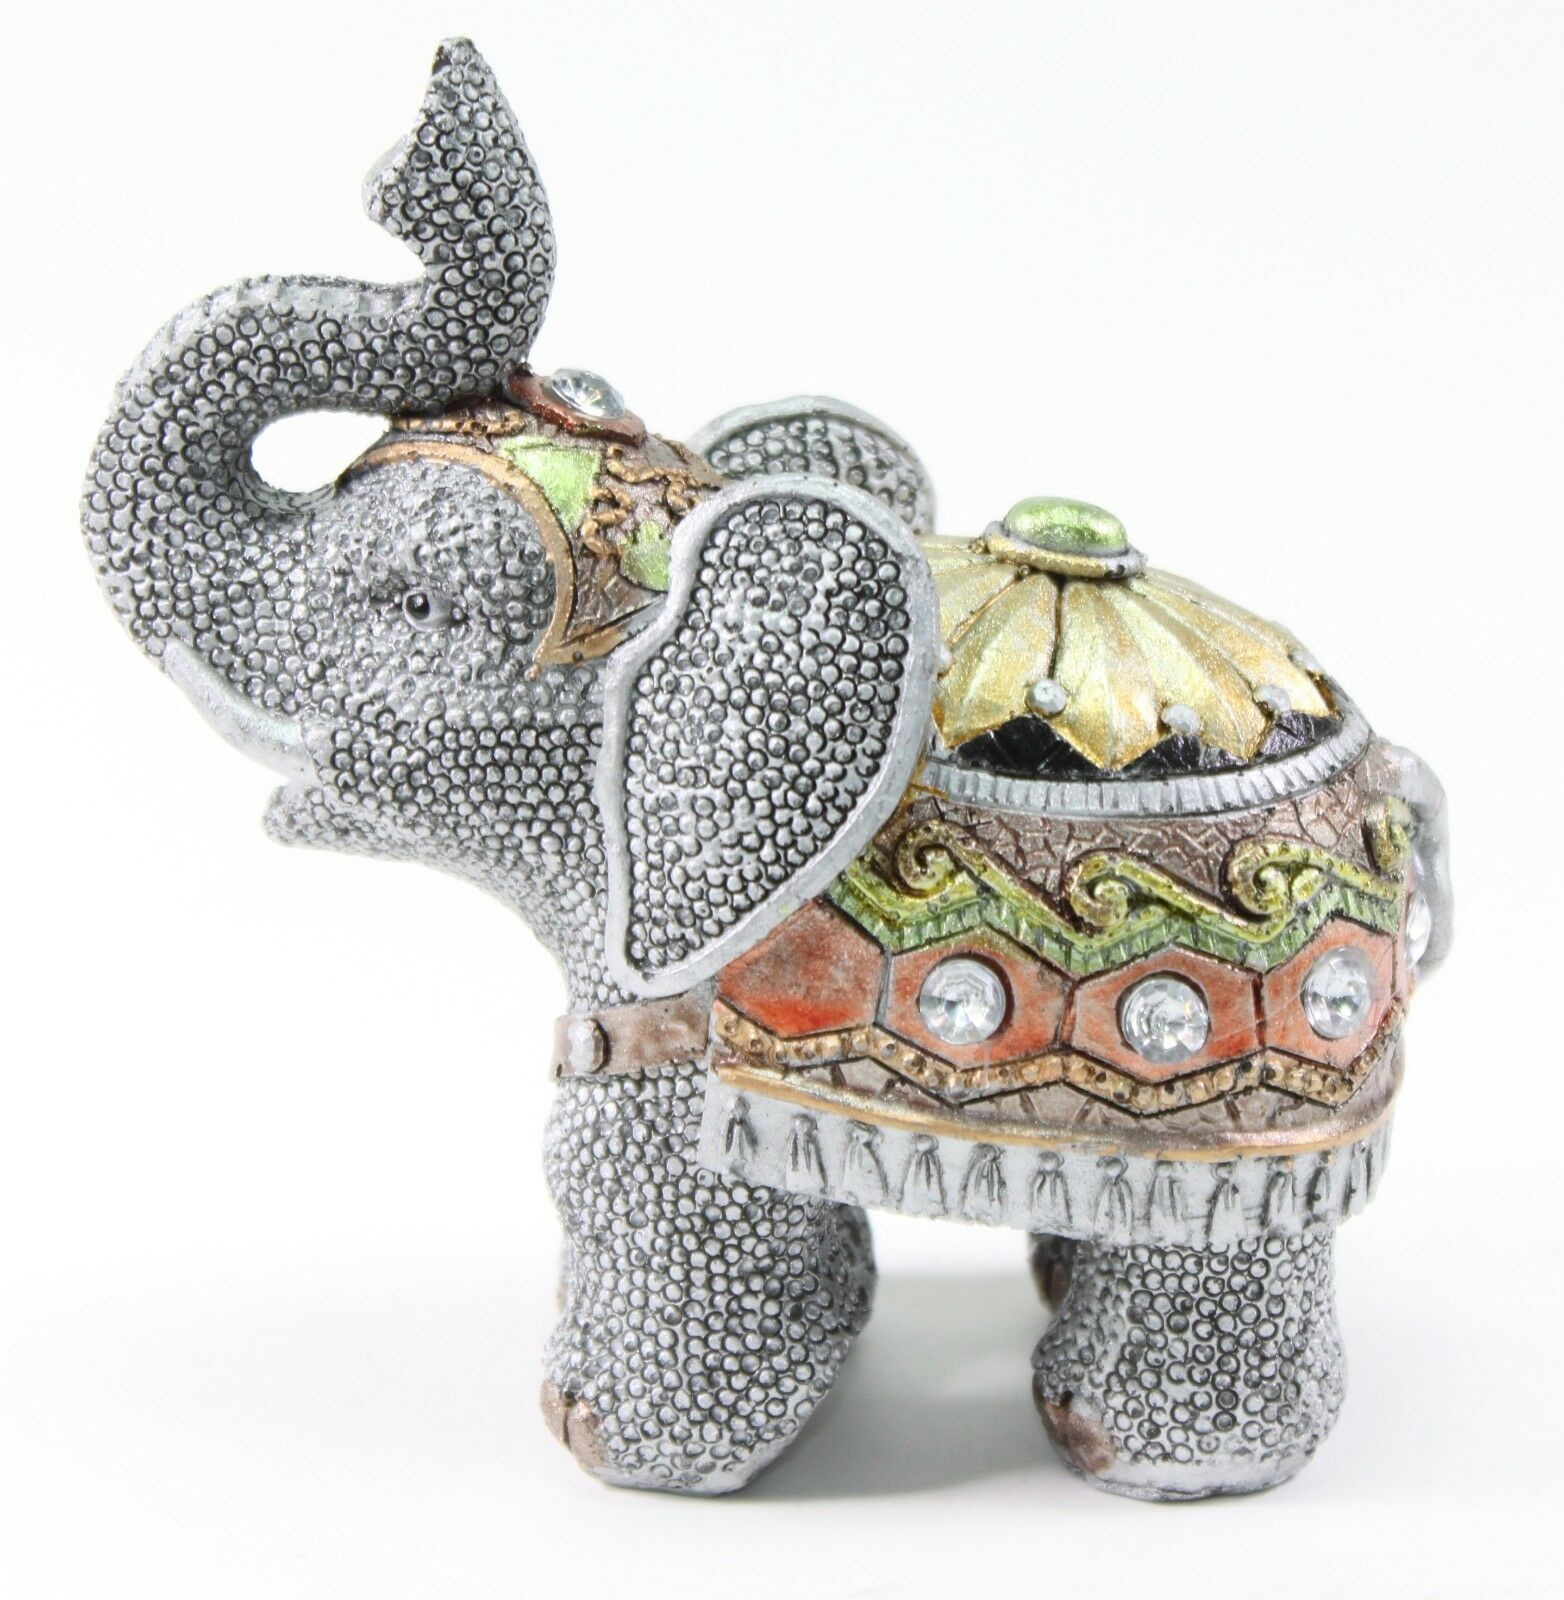 Feng Shui 5 Gray Elephant Trunk Statue Lucky Figurine Gift Home Decor Ebay: elephant home decor items